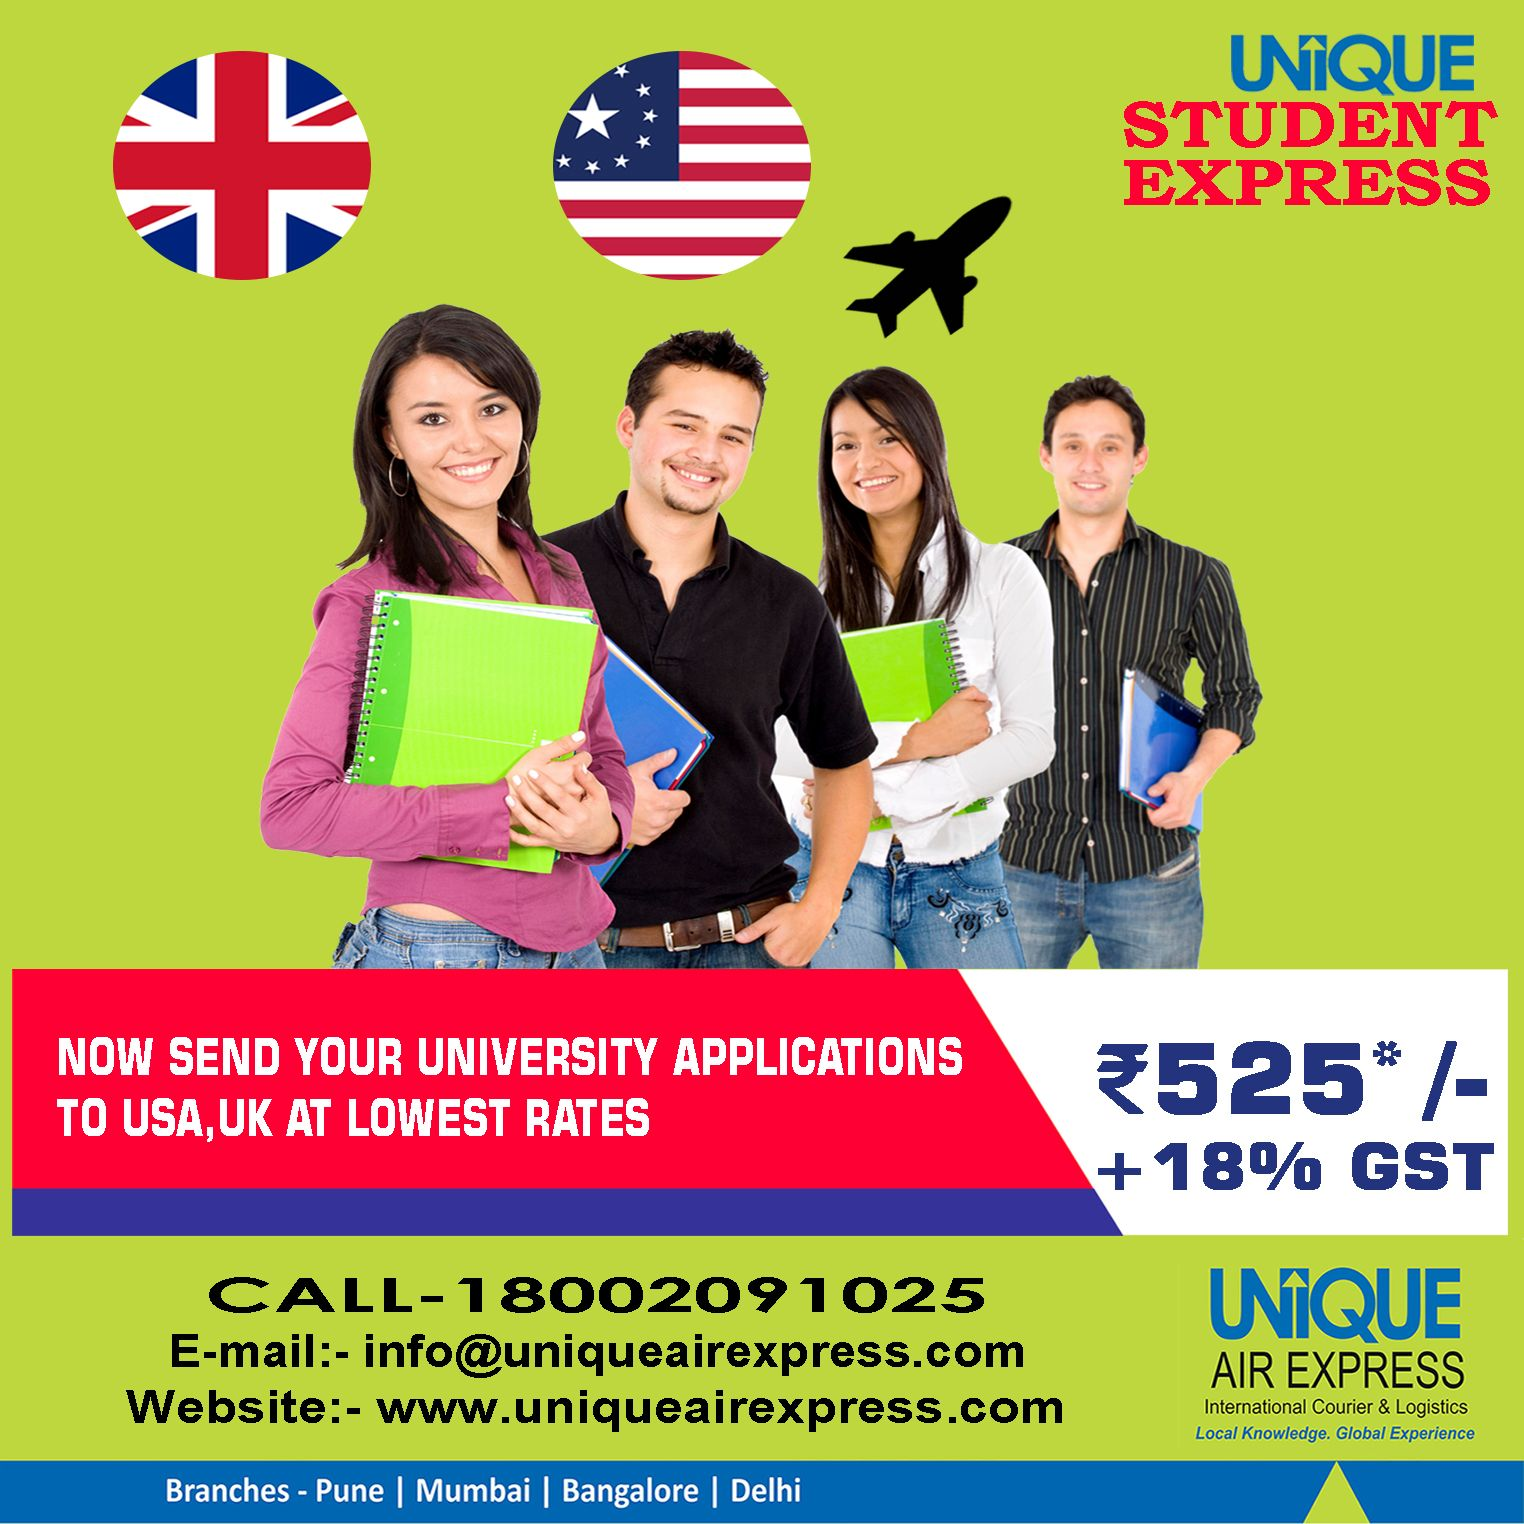 Now Studying Abroad is much easier. Send Your USA & UK